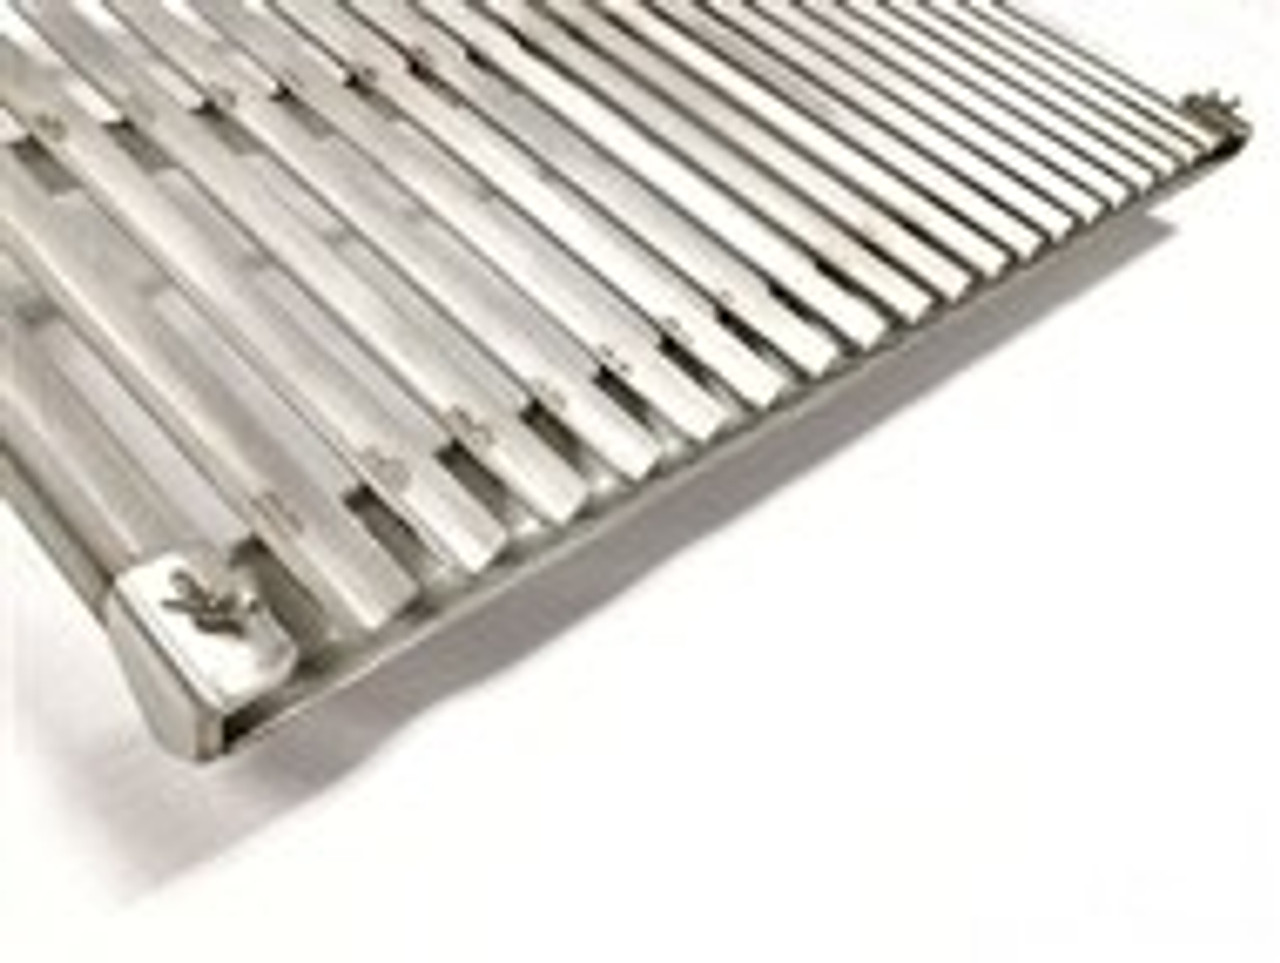 Stainless Steel Argentine V-Grate with Drip Pan